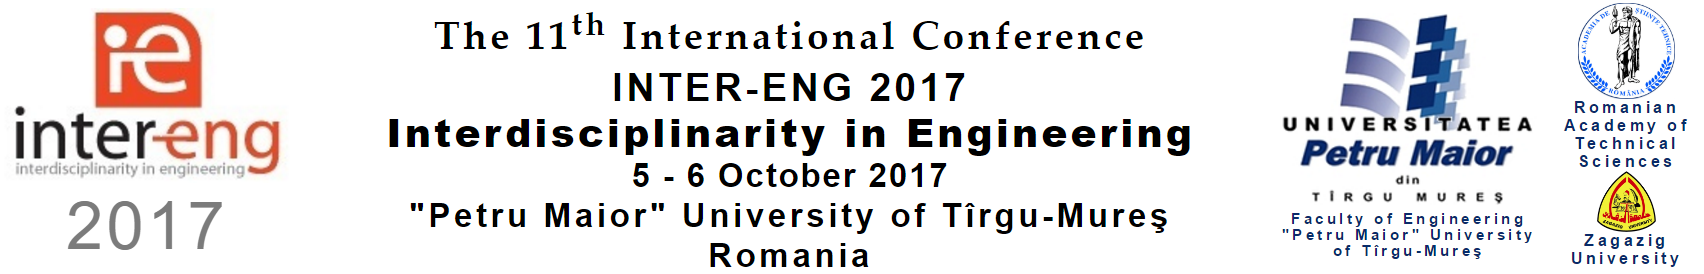 11th International Conference on Interdisciplinarity in Engineering